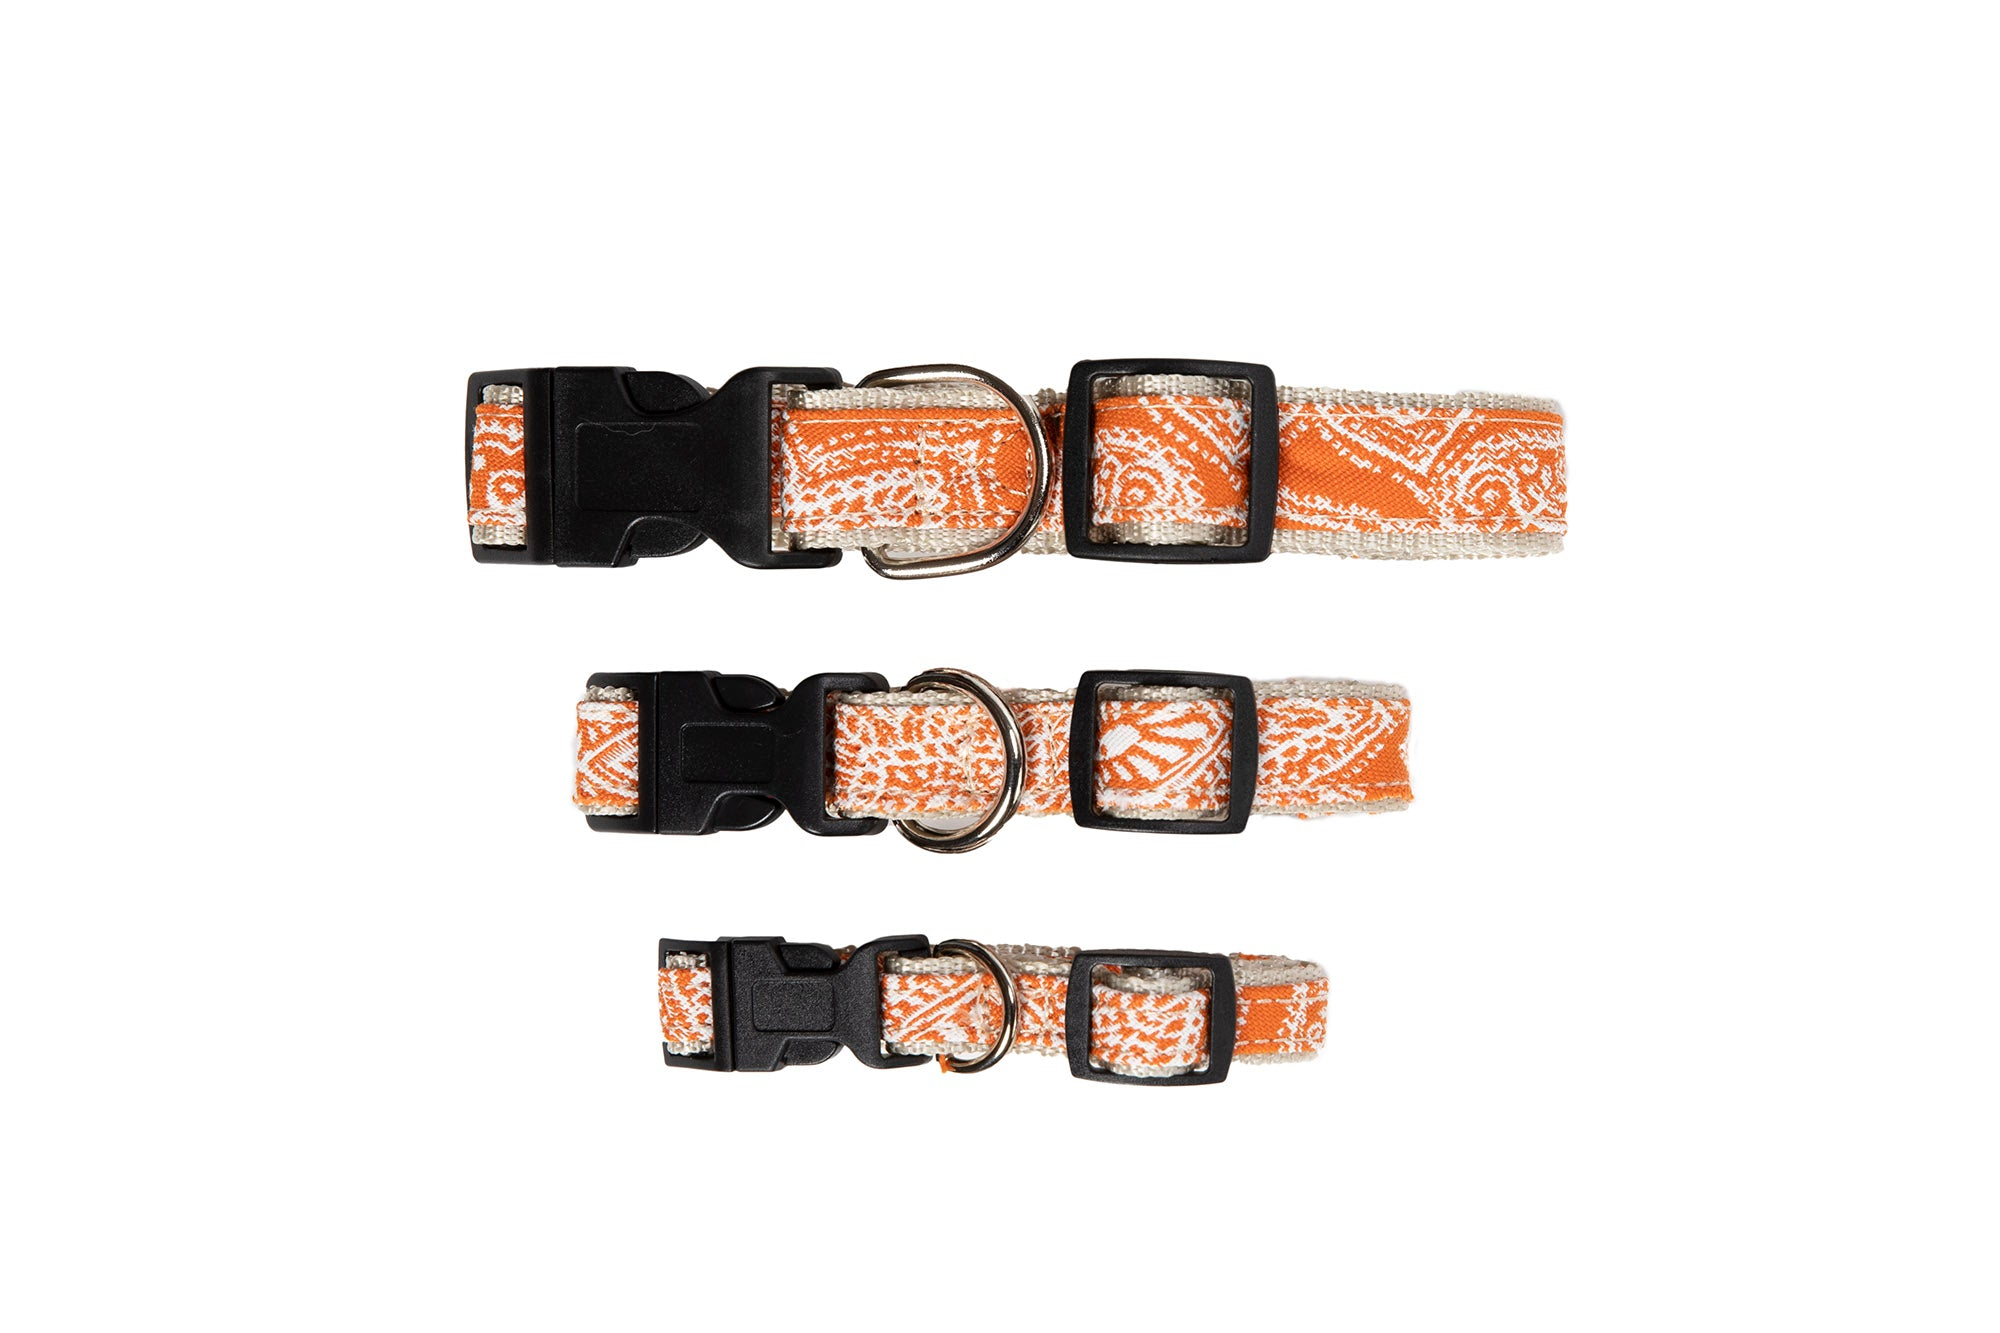 Signature Collection - Collar, Harness, & Lead - Curacao Orange